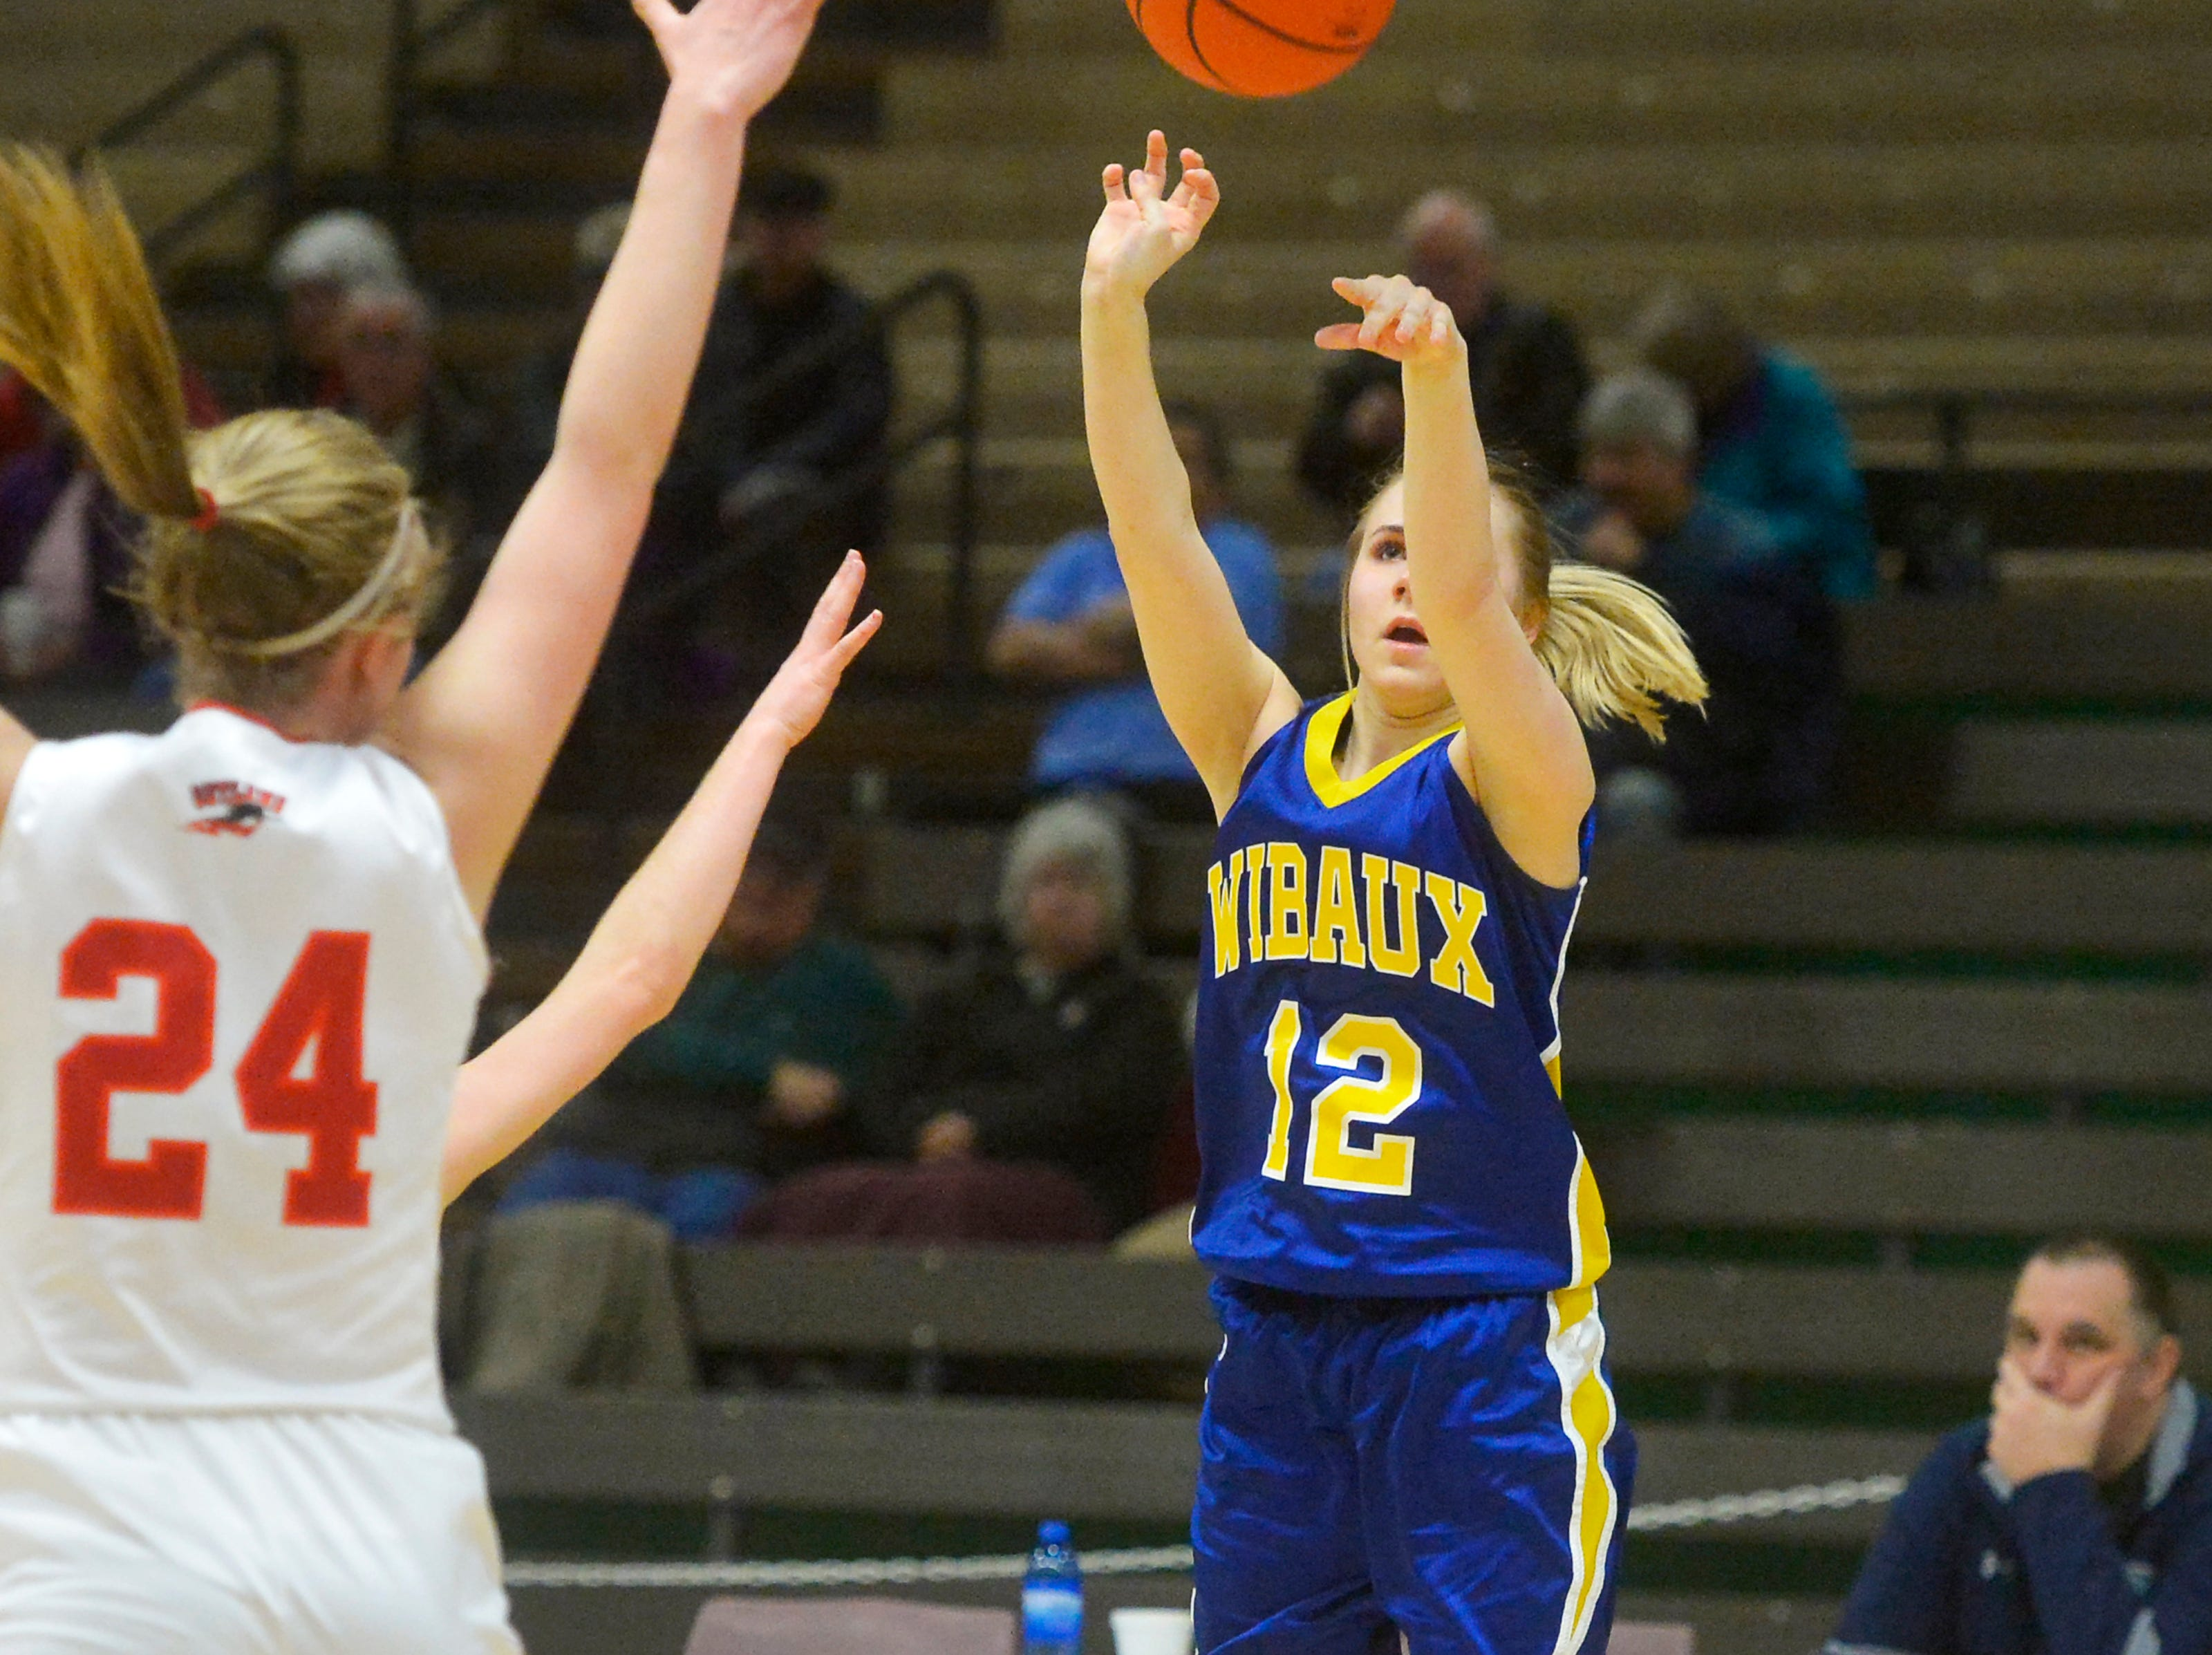 Wibaux's Ceara Miske shoots a three pointer in Thursday's game against Roy-Winifred during the Girls State C Basketball Tournament in the Four Seasons Arena.